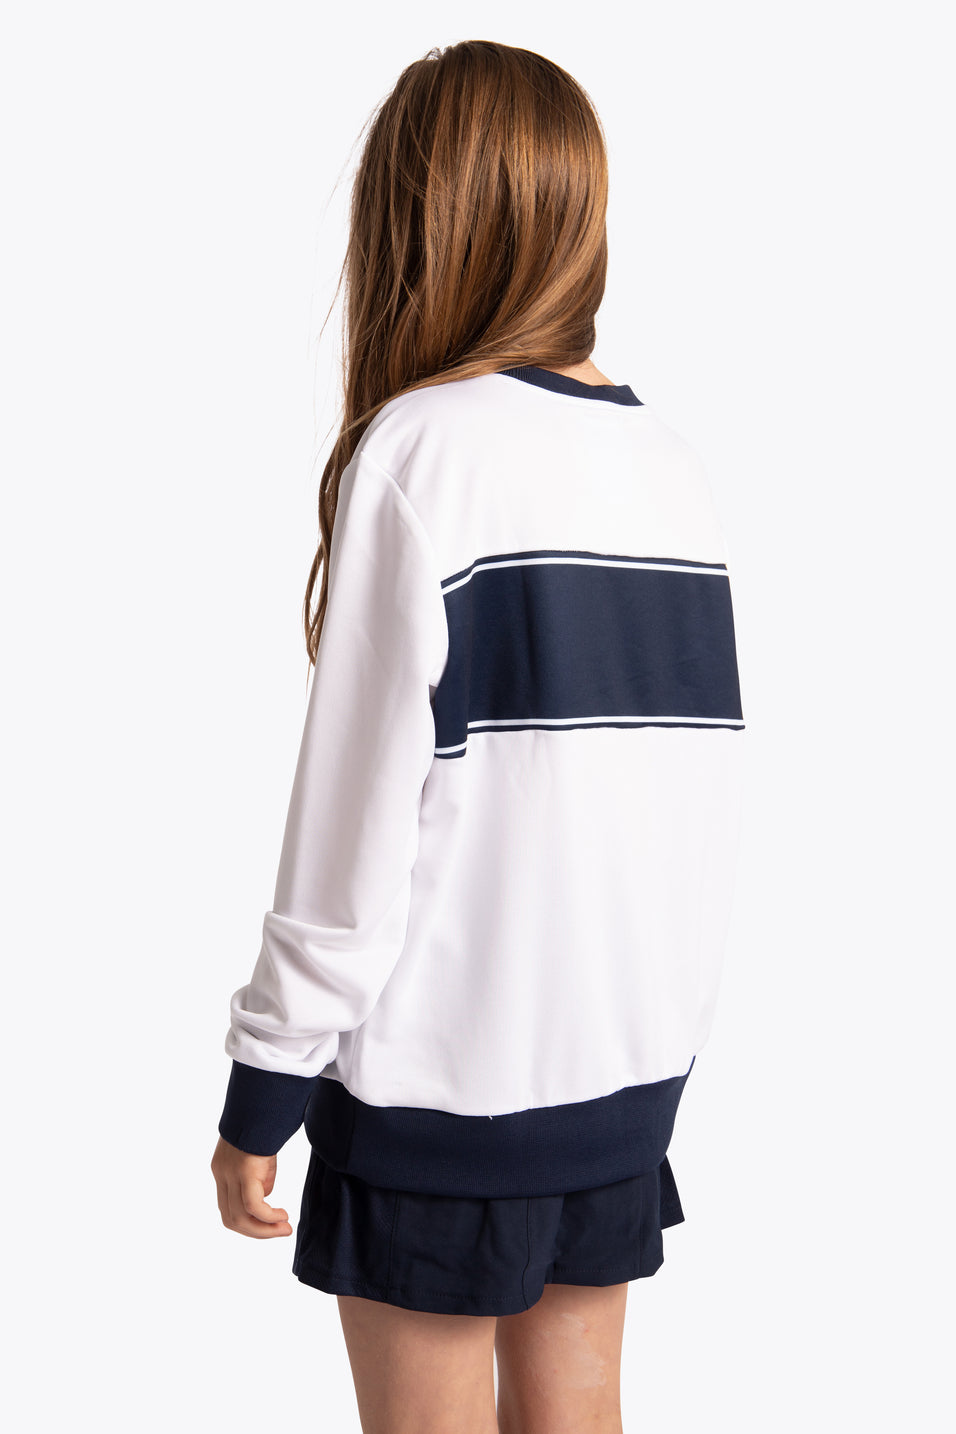 Osaka kids sweater back